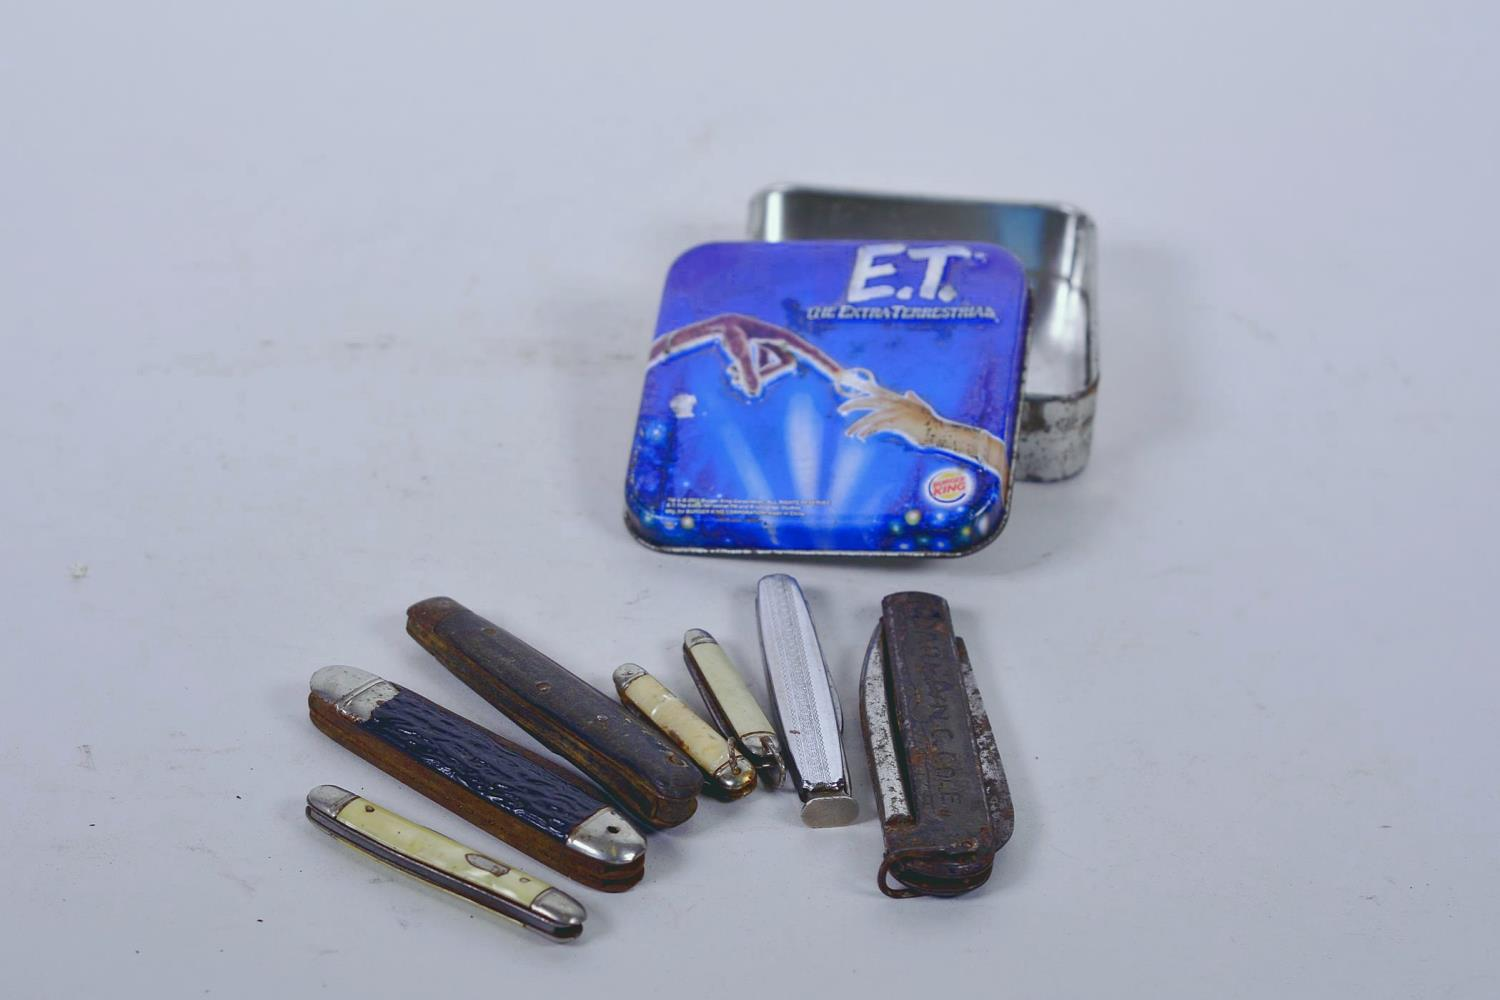 Lot 3 - A collection of seven various penknives in a Burger King 'ET' collector's tin